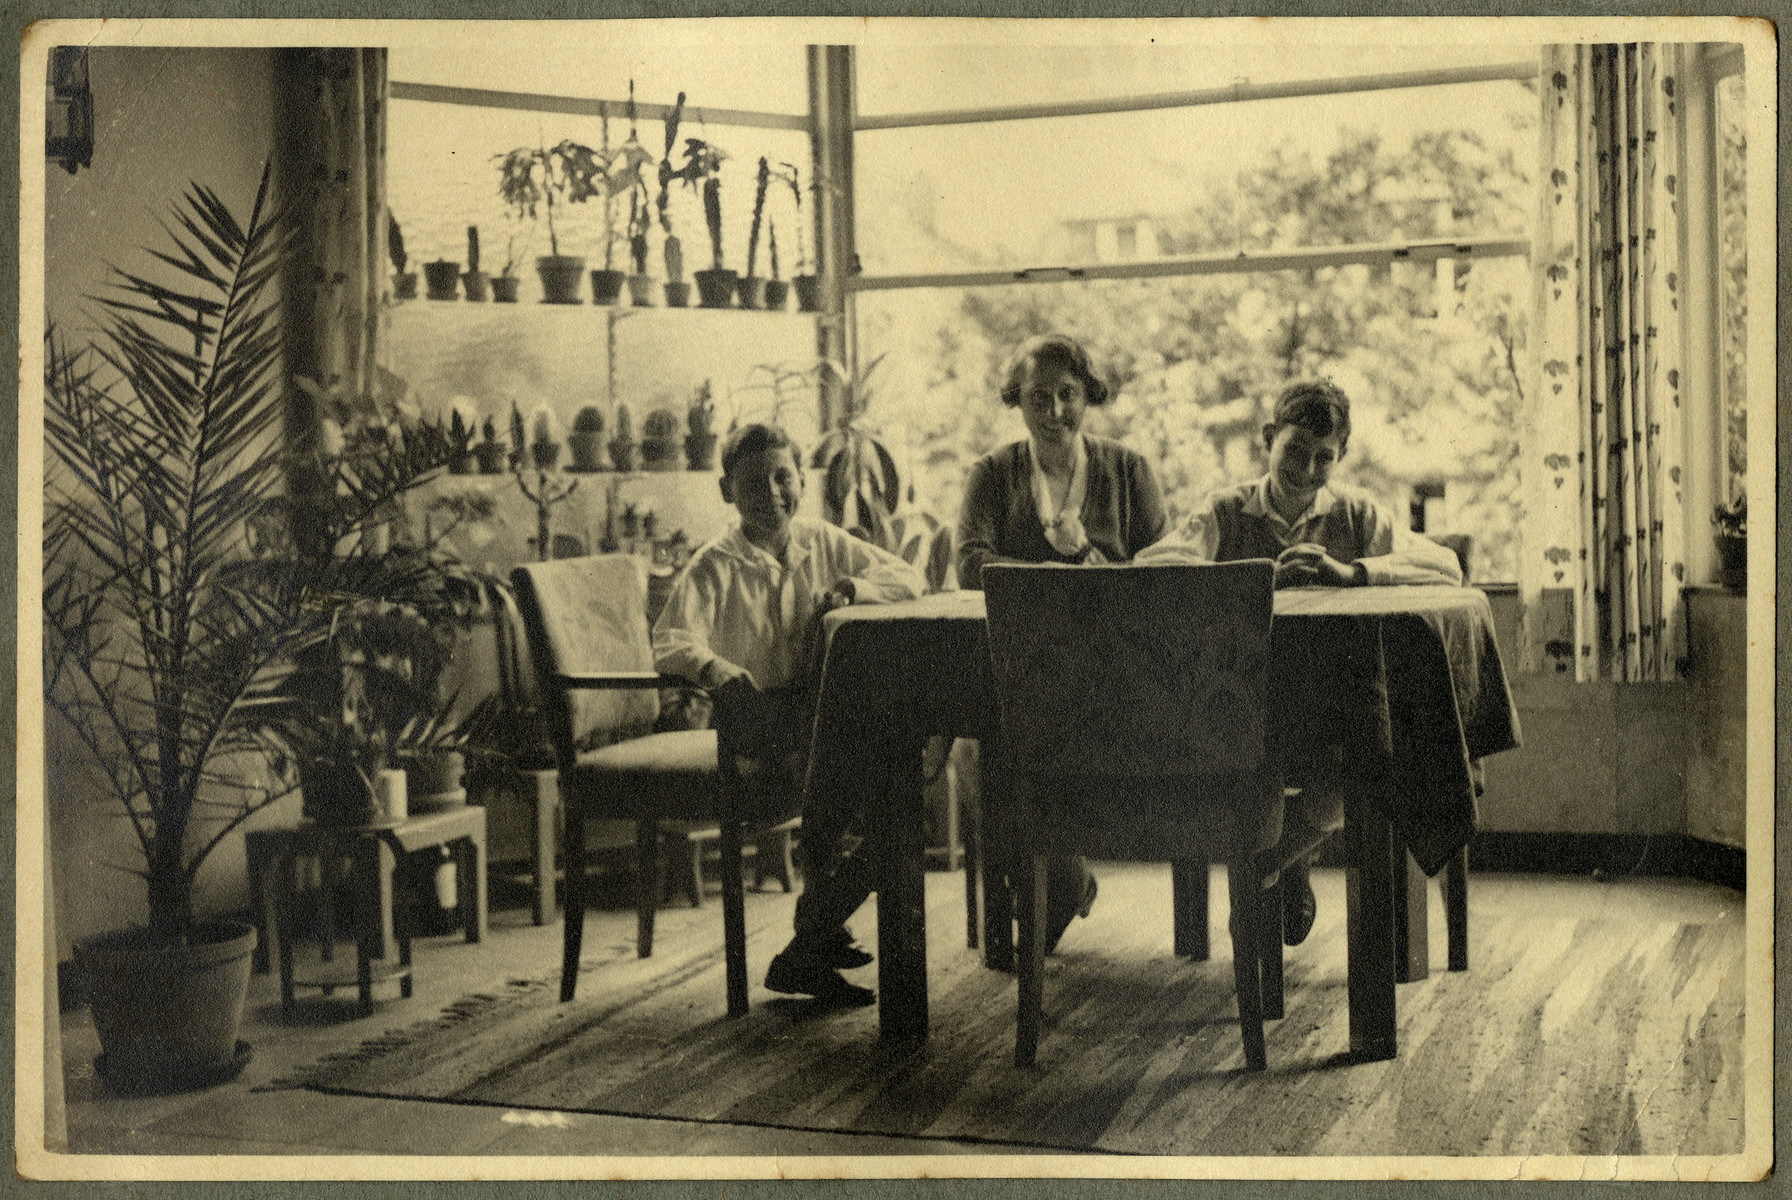 Alice Enfrenfeld sits in a sunny room filled with plants together with her two sons, Kurt (right) and Paul (left).